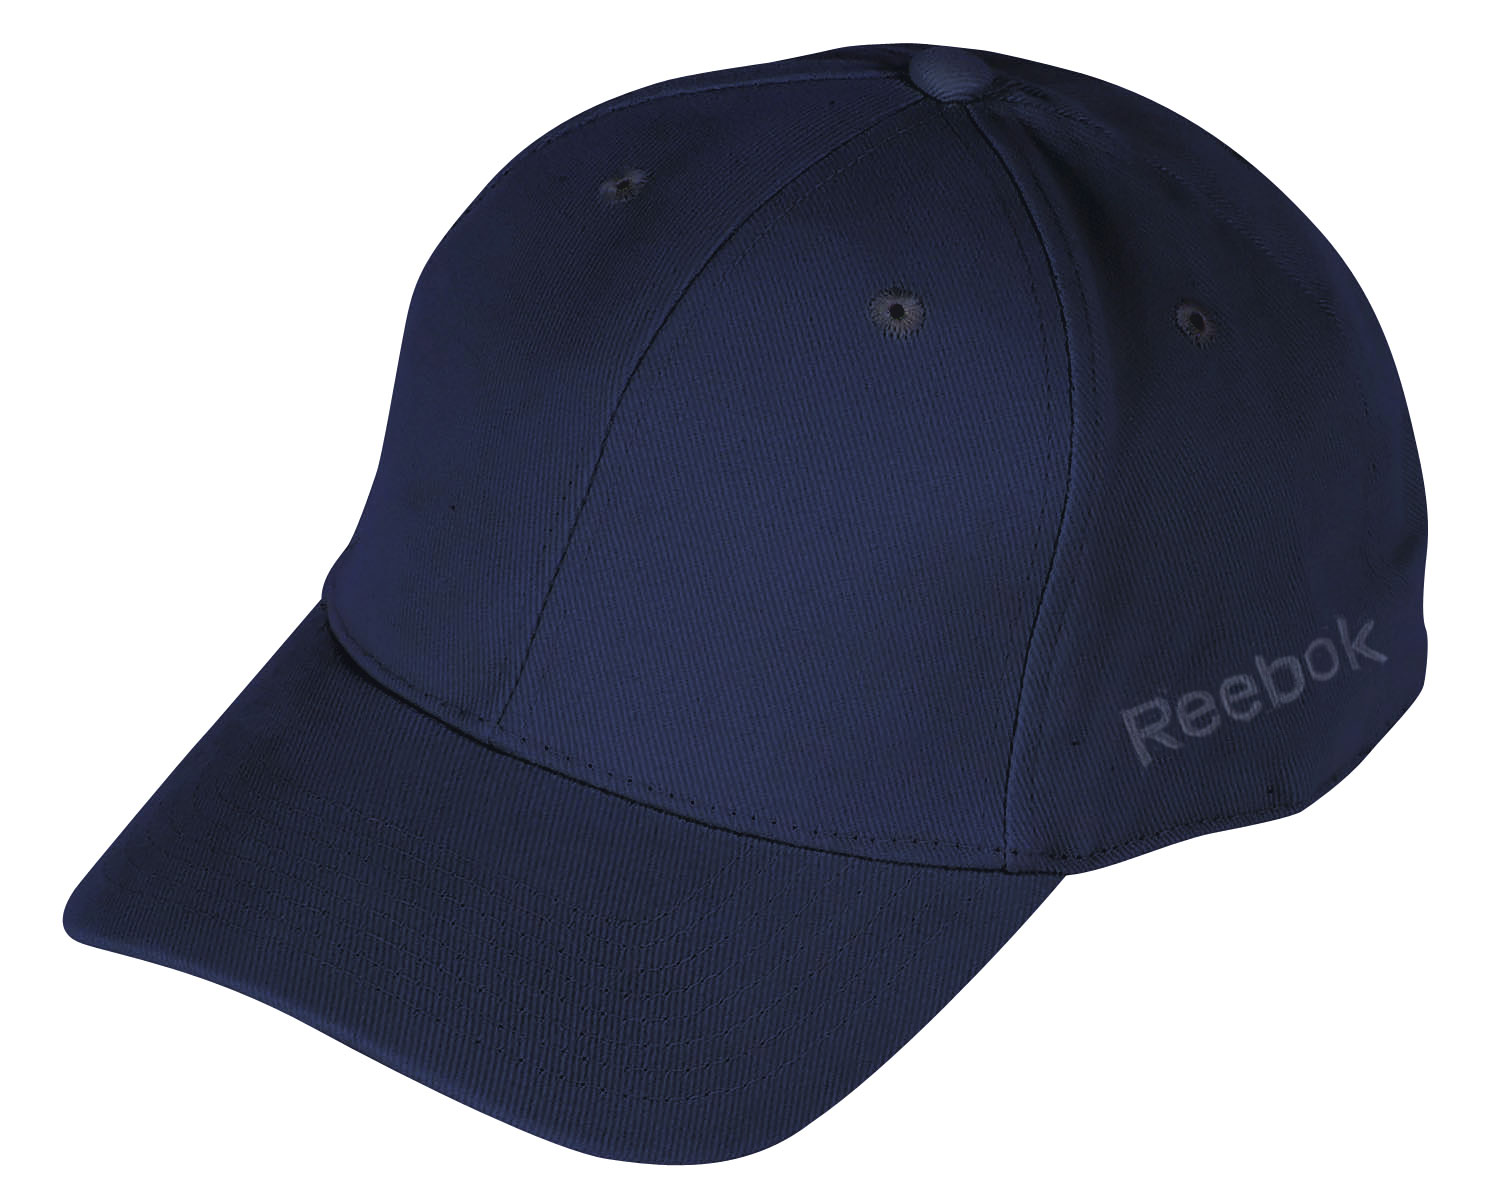 Reebok Fitted Twill Baseball Cap